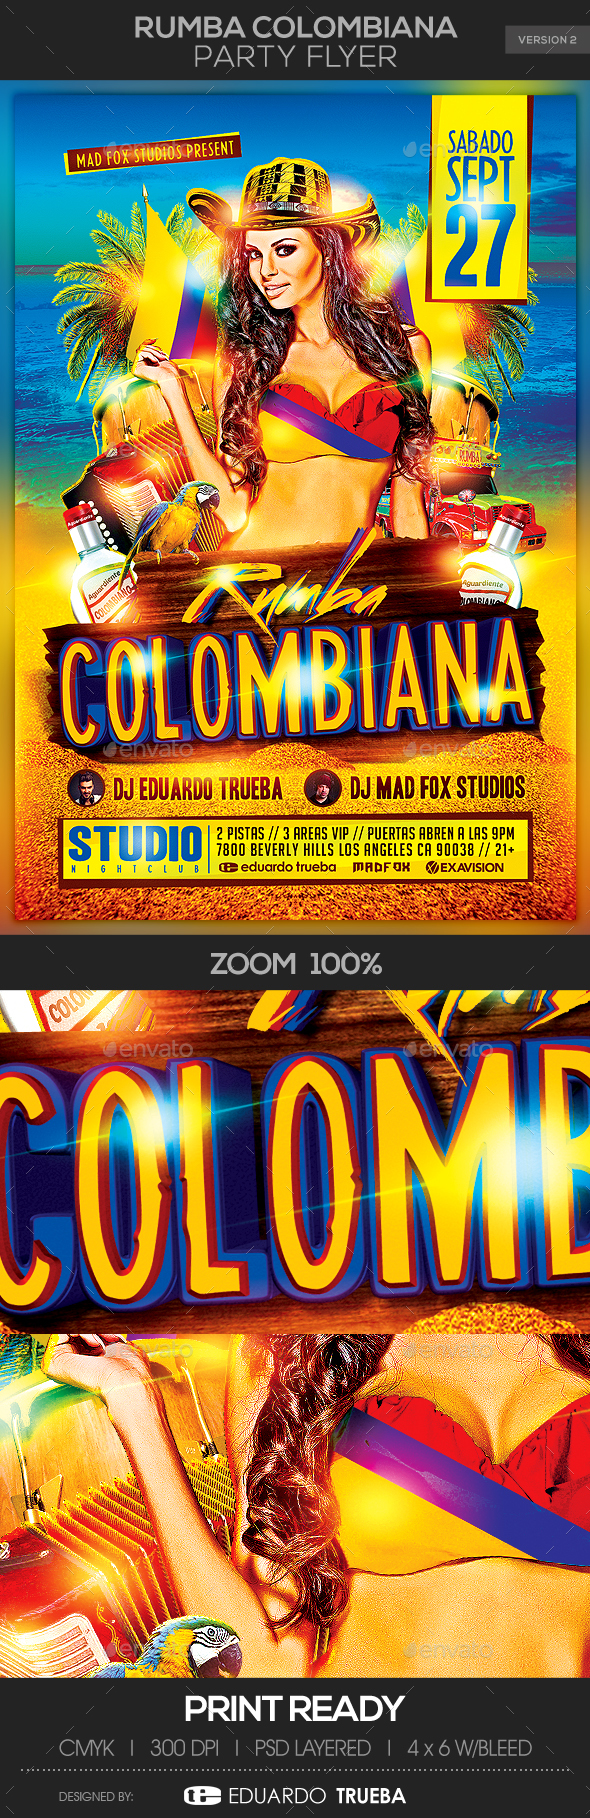 Rumba Colombiana Party Flyer - Events Flyers